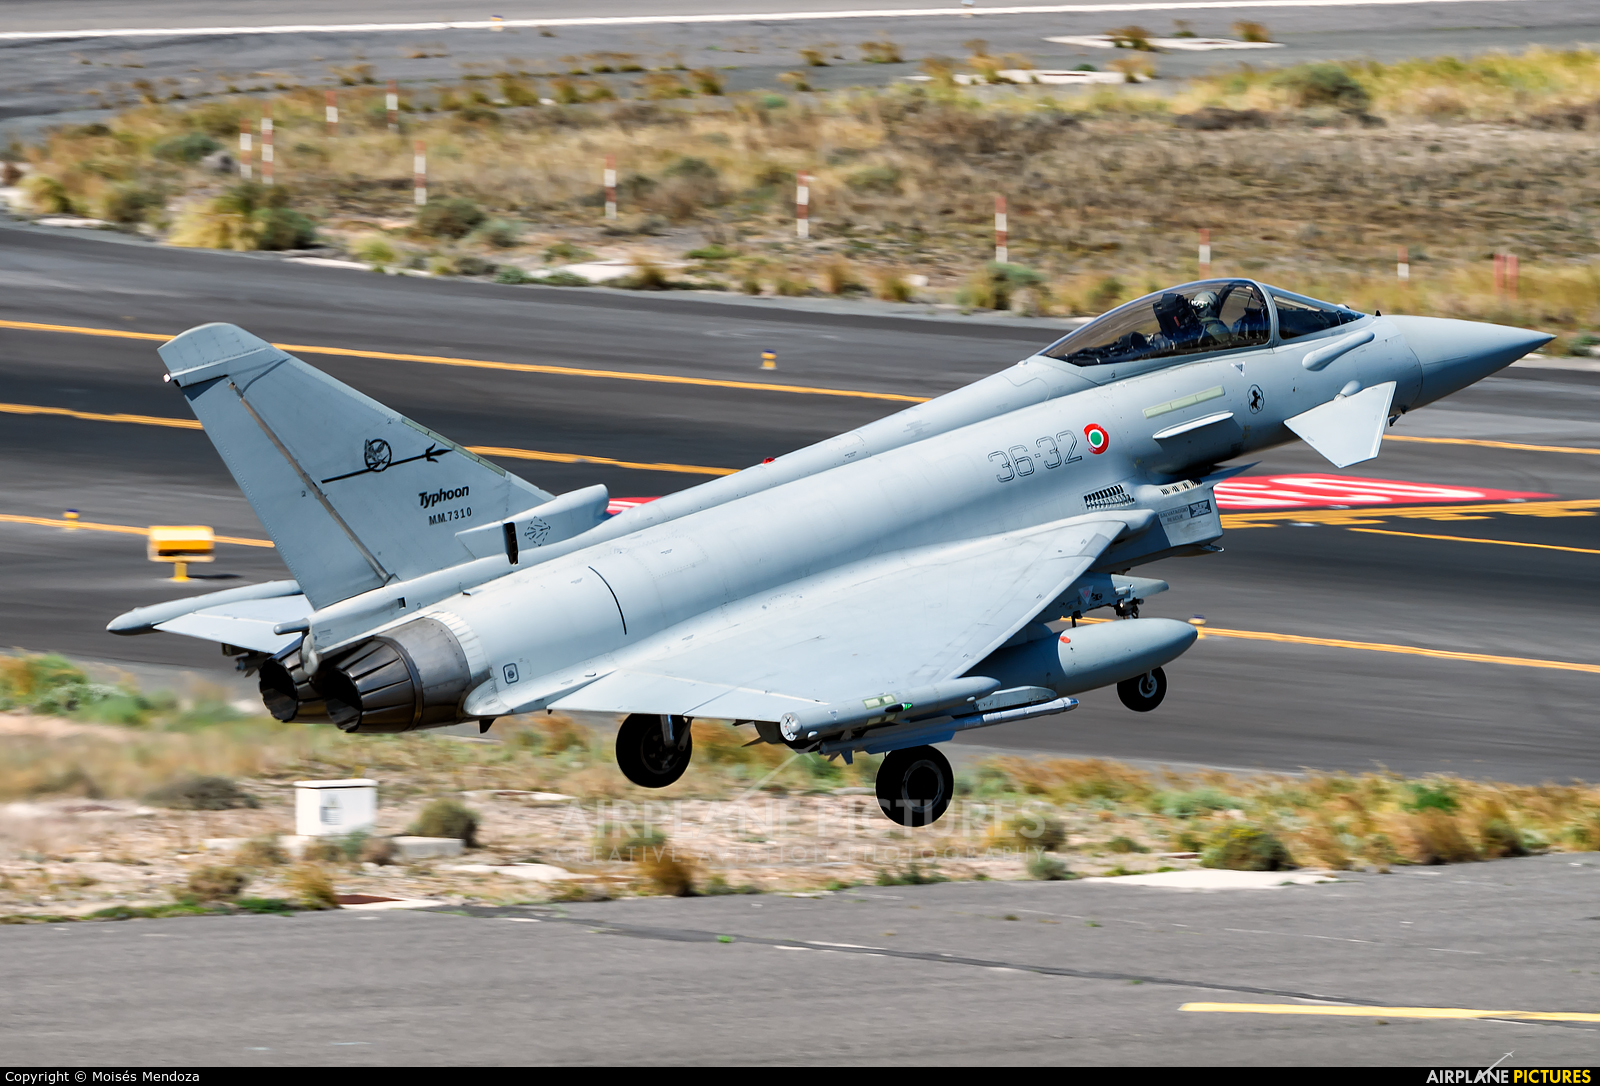 Italy - Air Force MM7310 aircraft at Aeropuerto de Gran Canaria